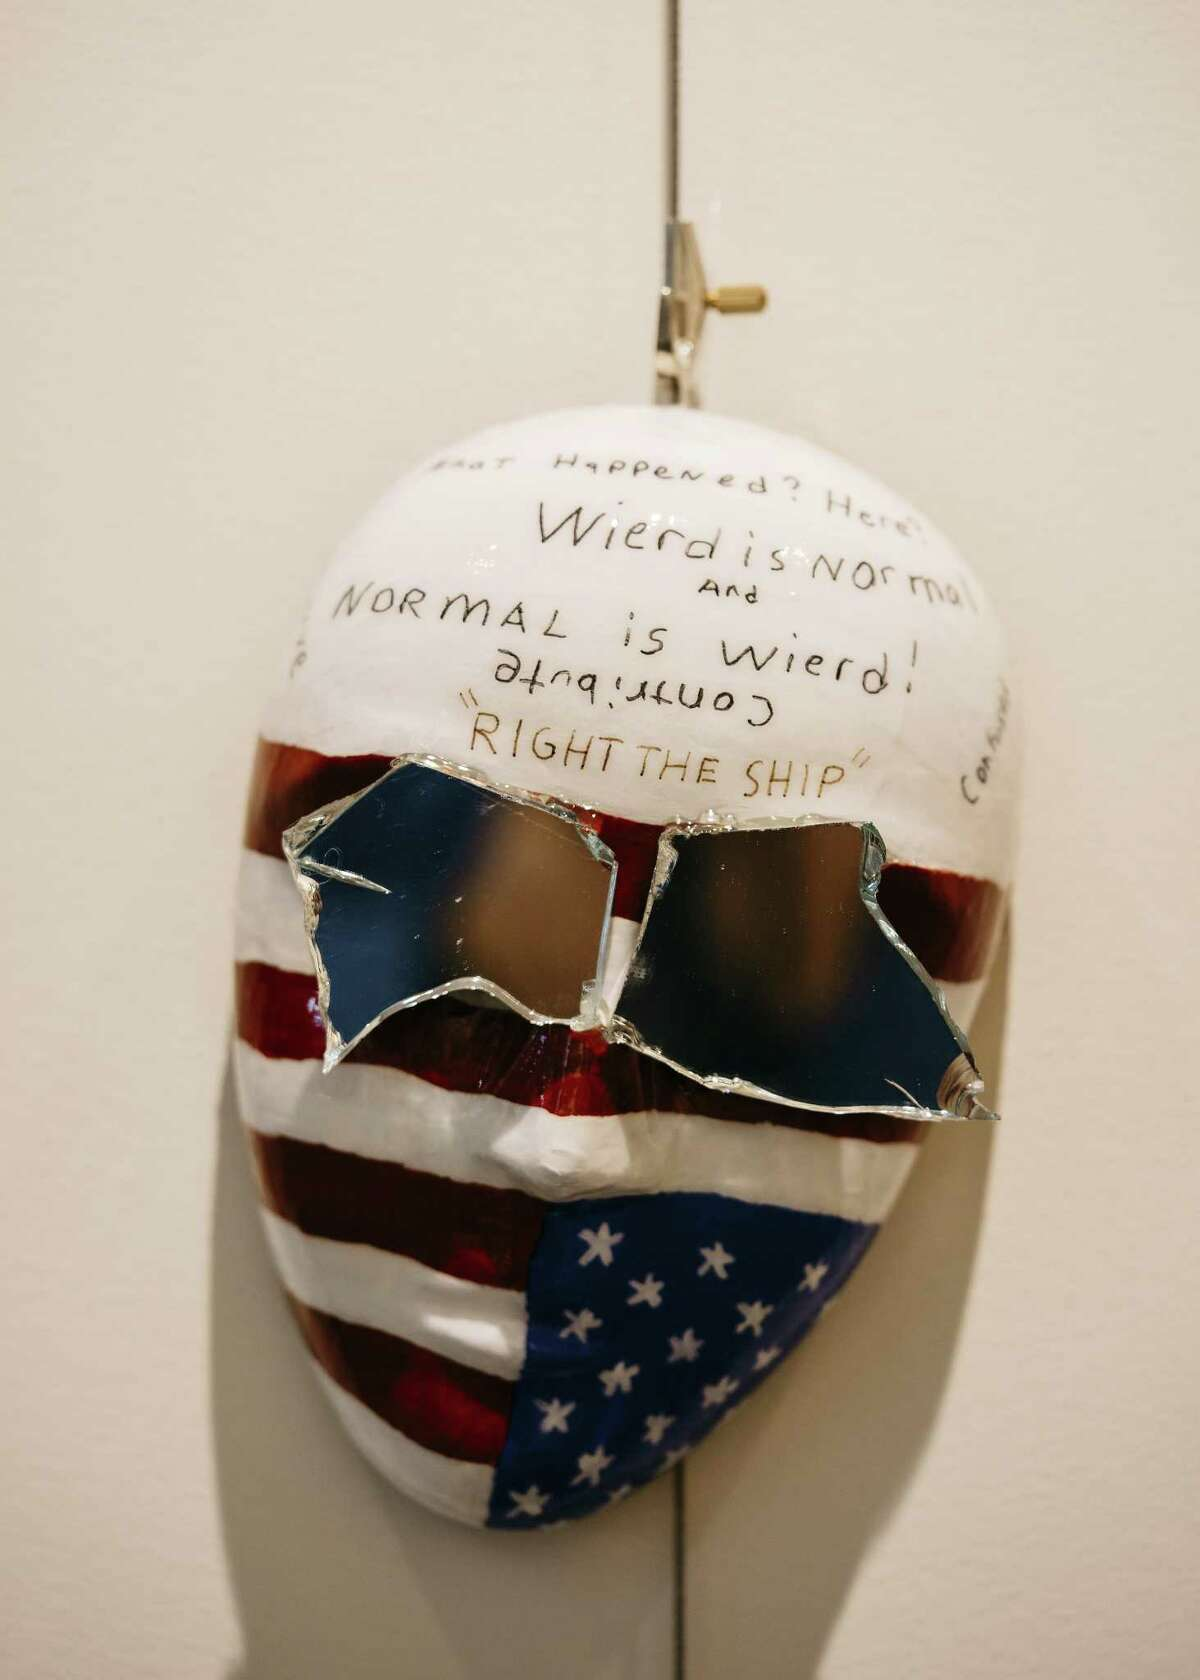 A mask designed by a veteran through a program hosted by the National Intrepid Center of Excellence at Walter Reed Military Hospital in Bethesda, Md., March 23, 2017. The art therapy program, which is run by the National Endowment for the Arts to help veterans cope with brain injuries or post-traumatic stress disorder, is being cited to rebut calls for defunding the agency. (Justin T. Gellerson/The New York Times)